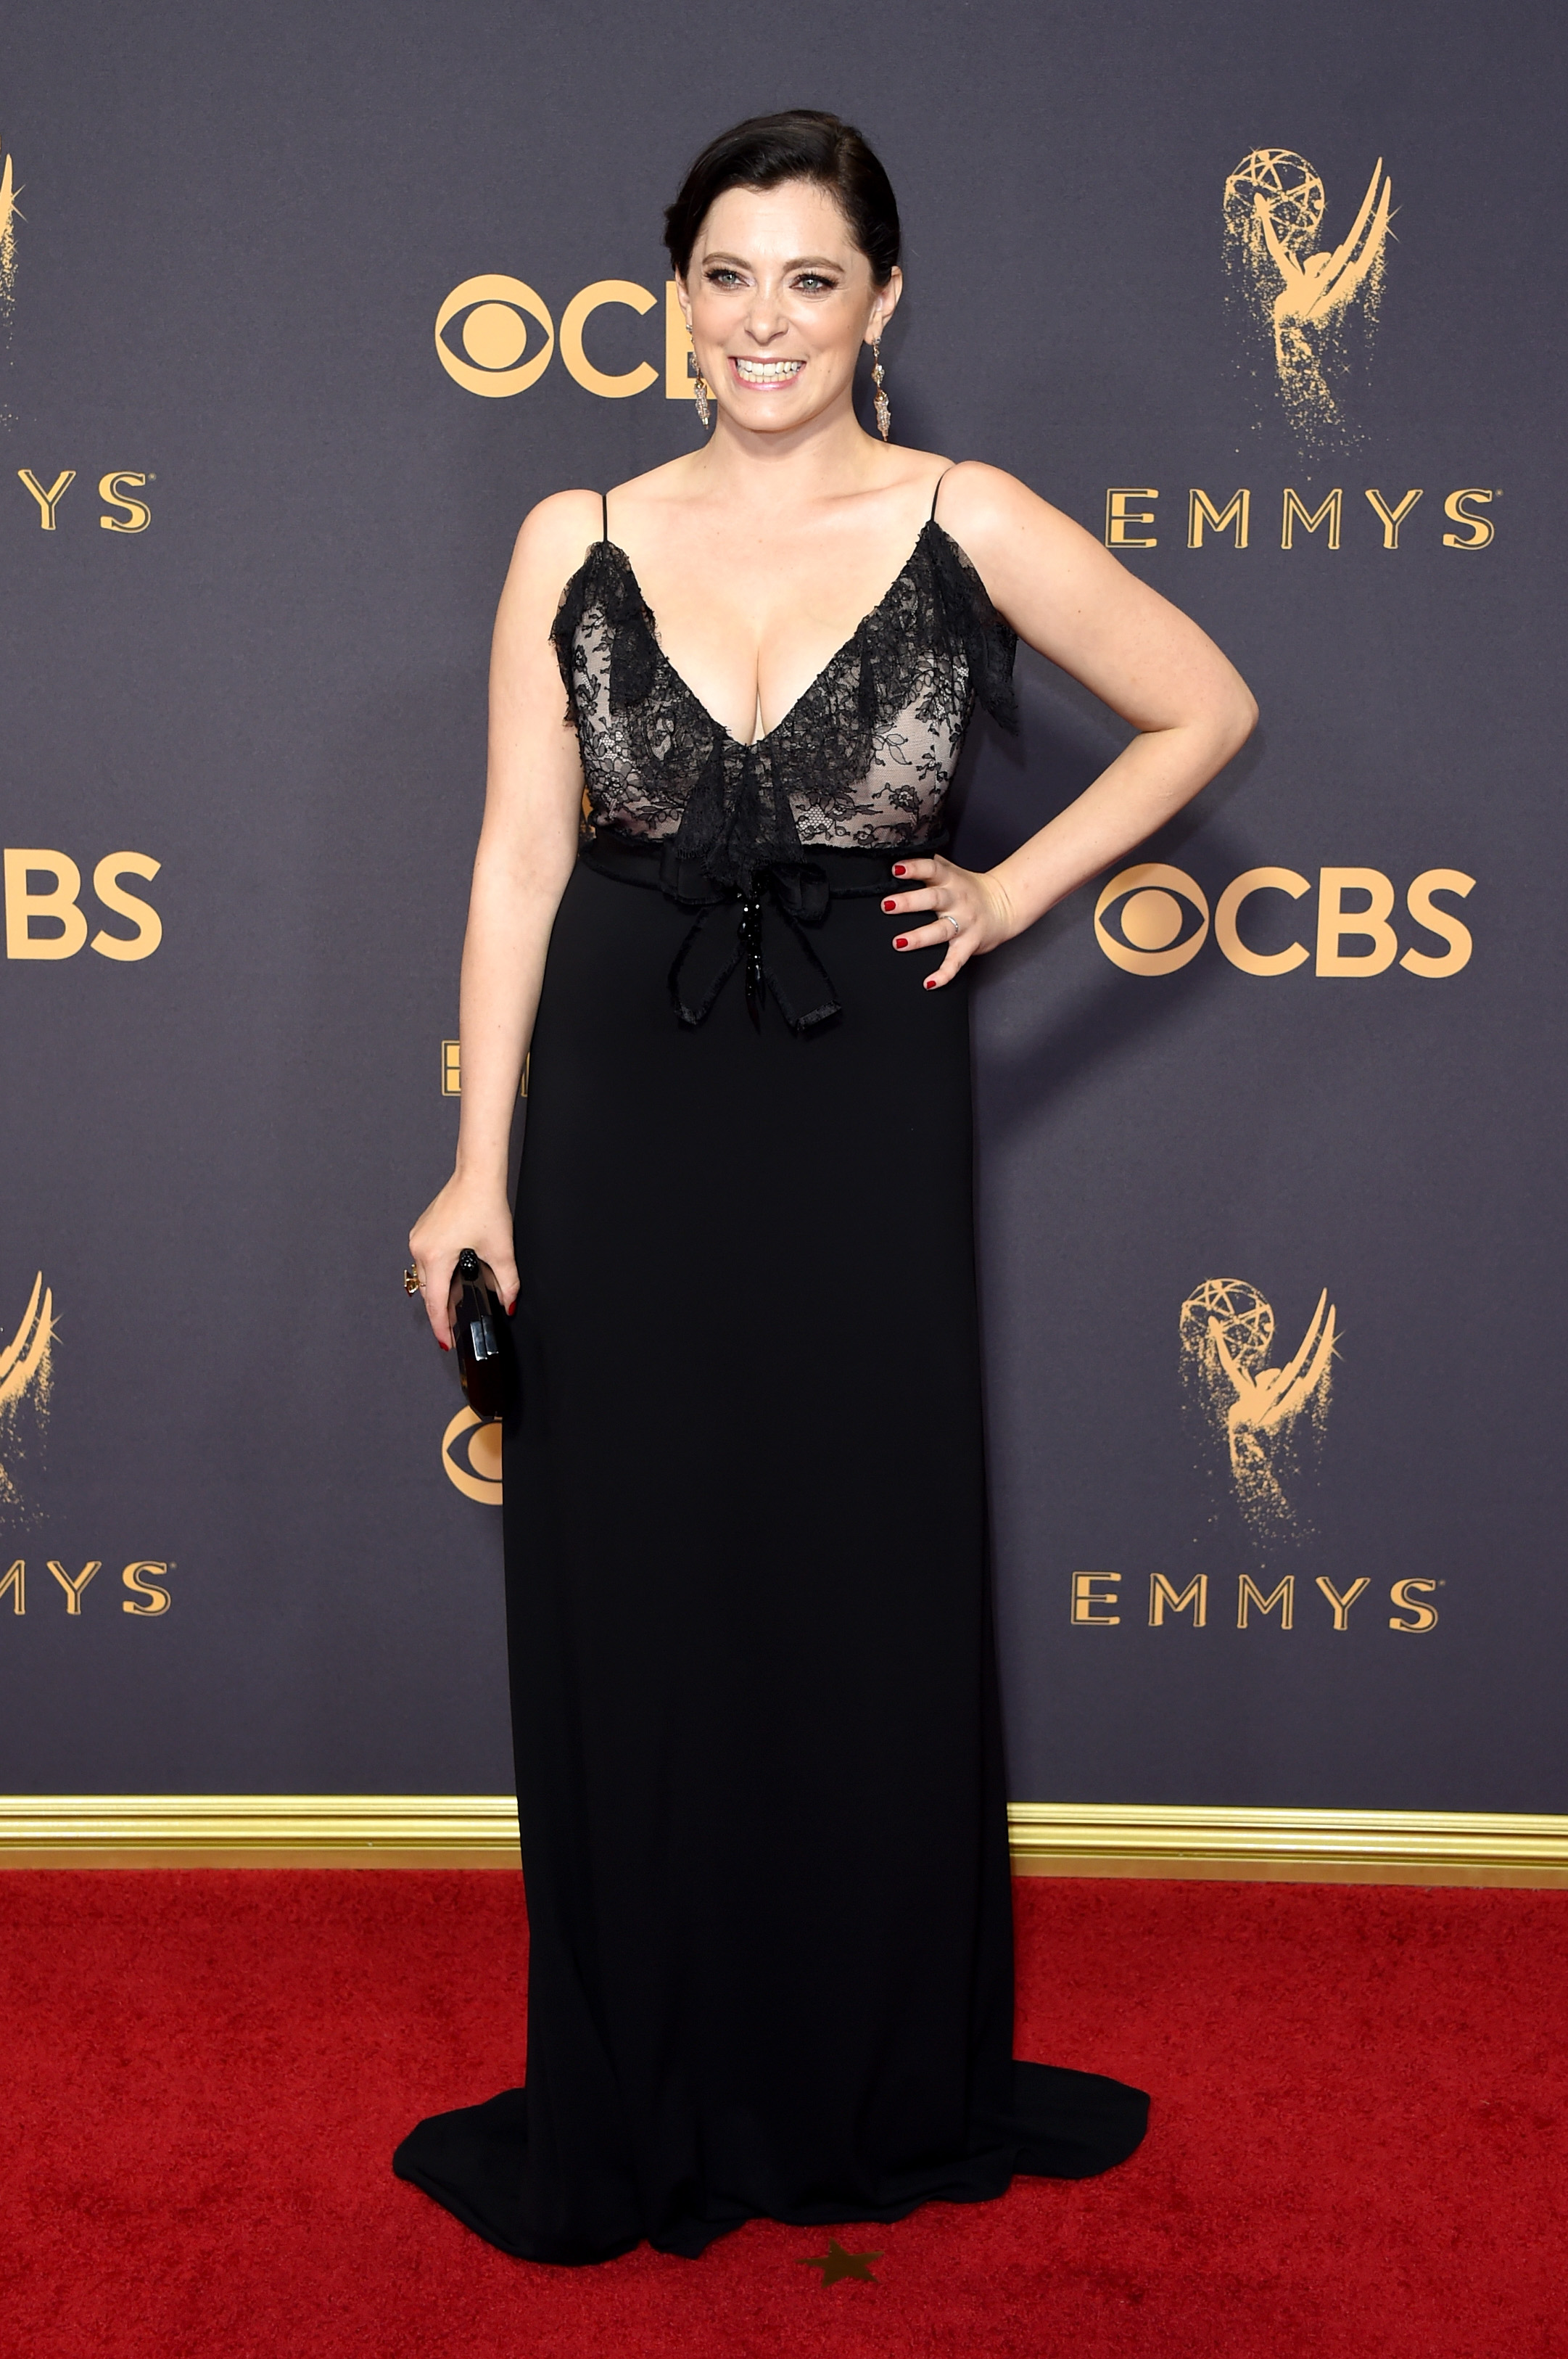 Writer-actor Rachel Bloom attends the 69th Annual Primetime Emmy Awards at Microsoft Theater on September 17, 2017 in Los Angeles, California.